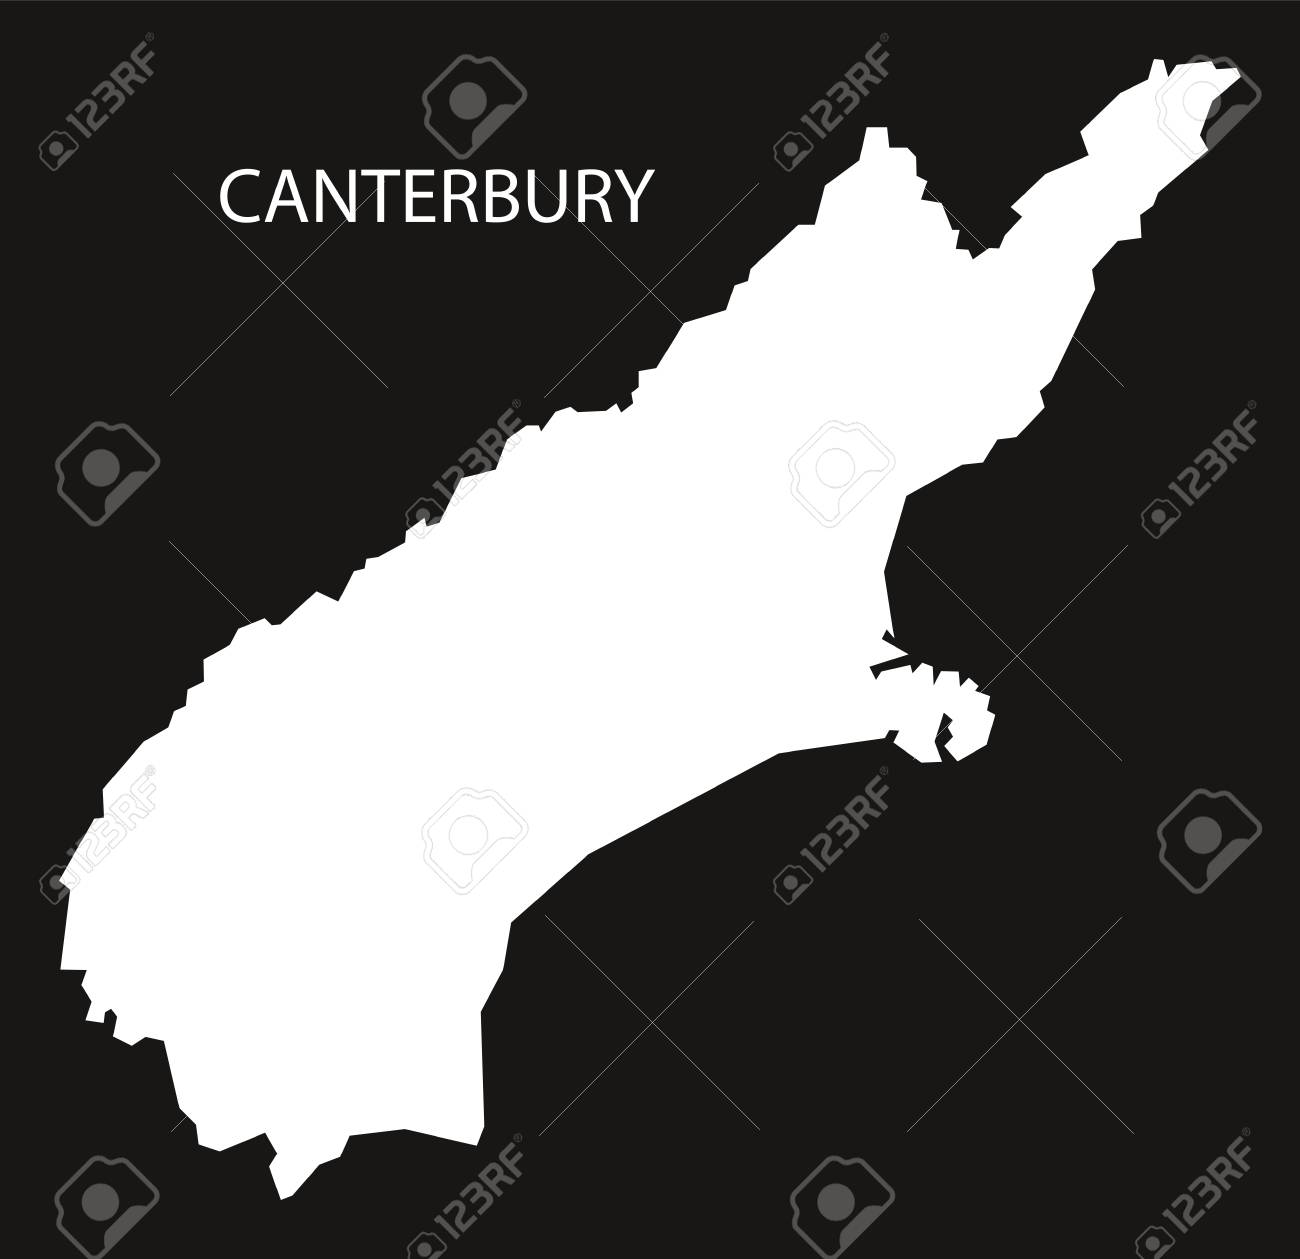 Map Of Canterbury New Zealand.Canterbury New Zealand Map Black Inverted Silhouette Illustration